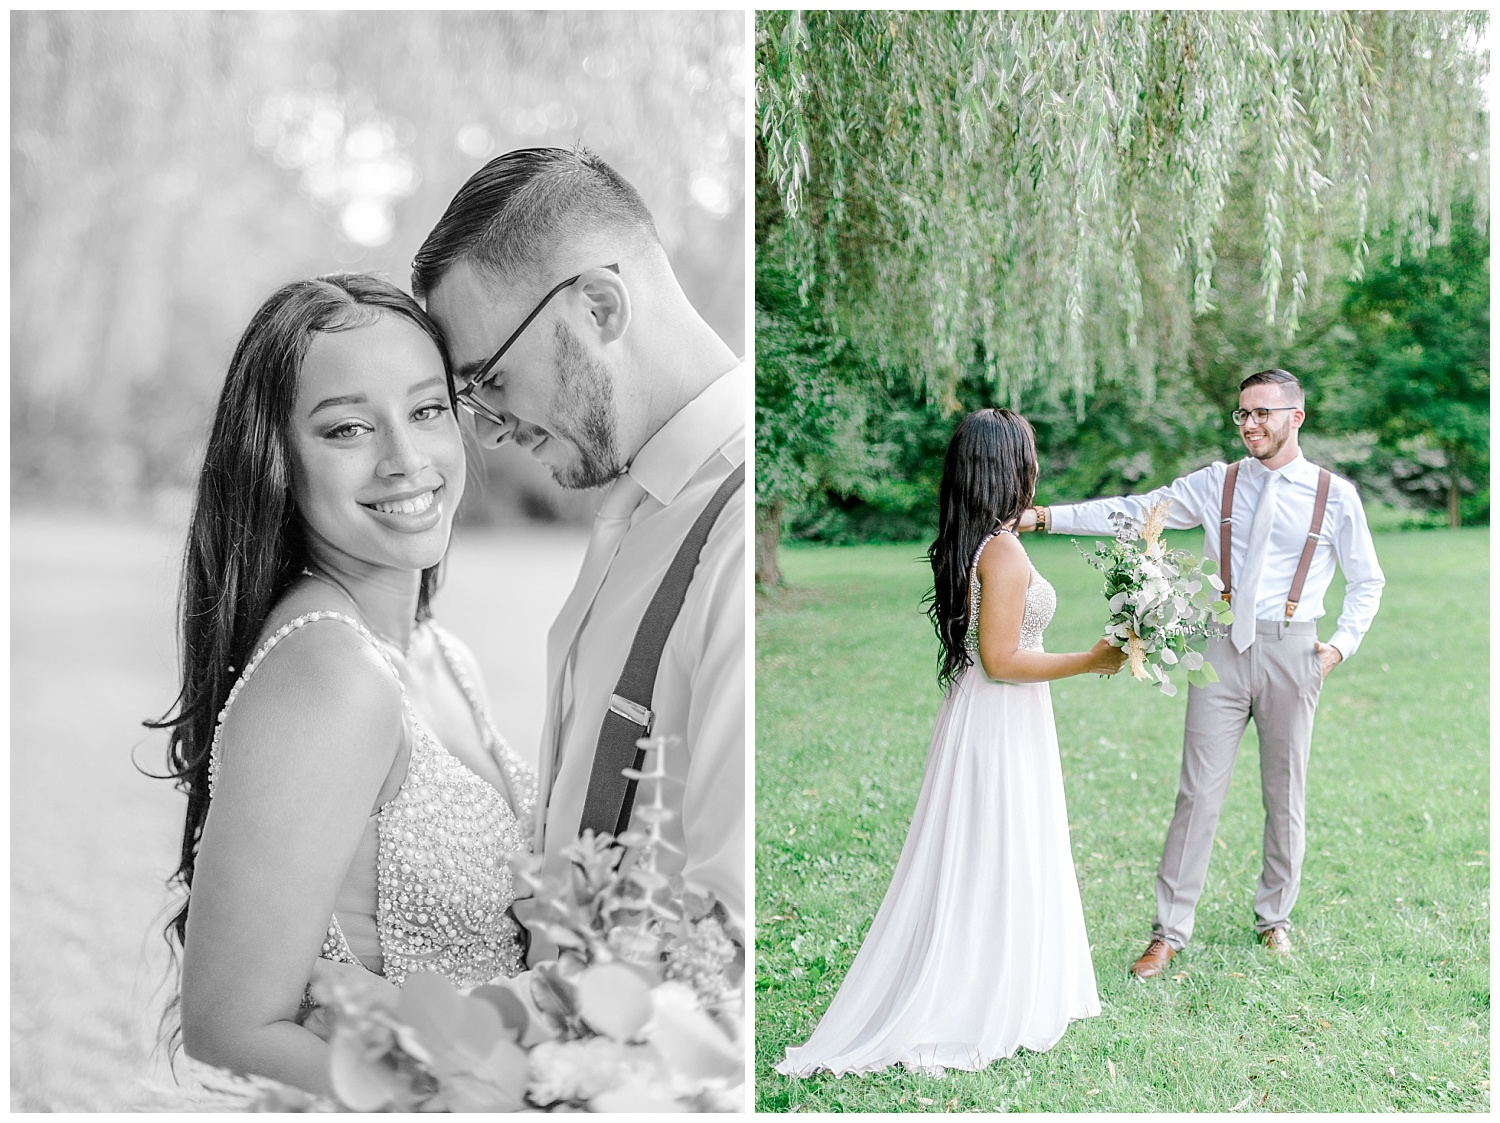 Olive green and white rustic barn wedding at burnside plantation in bethlehem pennsylvania by PA based destination wedding and lifestyle photographer Lytle photography (19).jpg